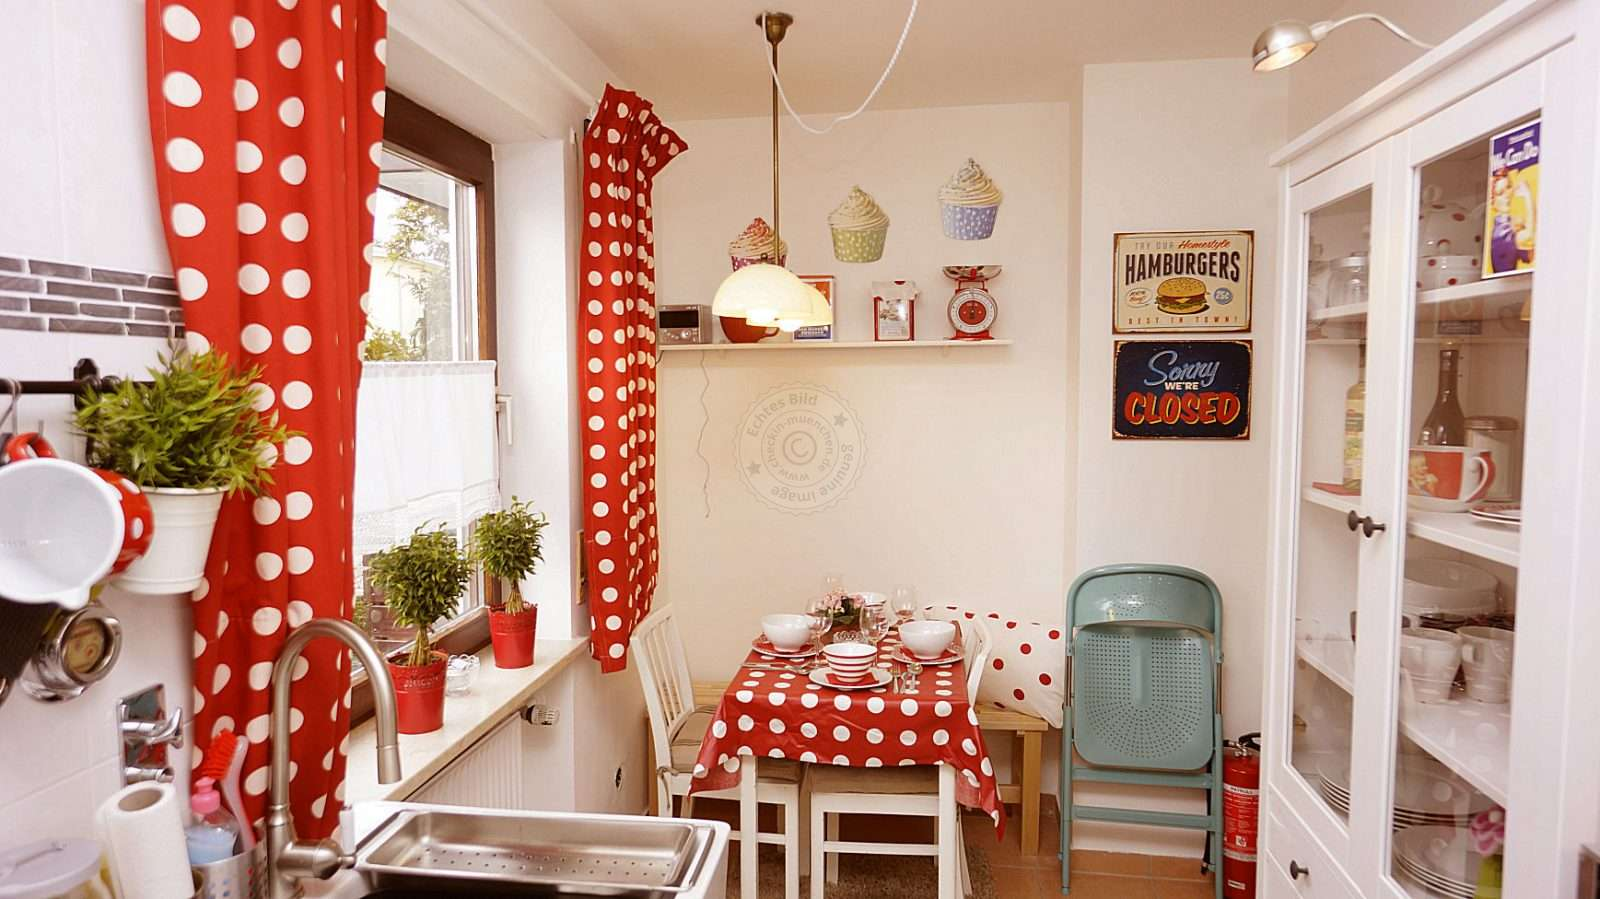 Imaginecozy Staging A Kitchen: Munich: Beautiful Apartment With Balcony In Leafy